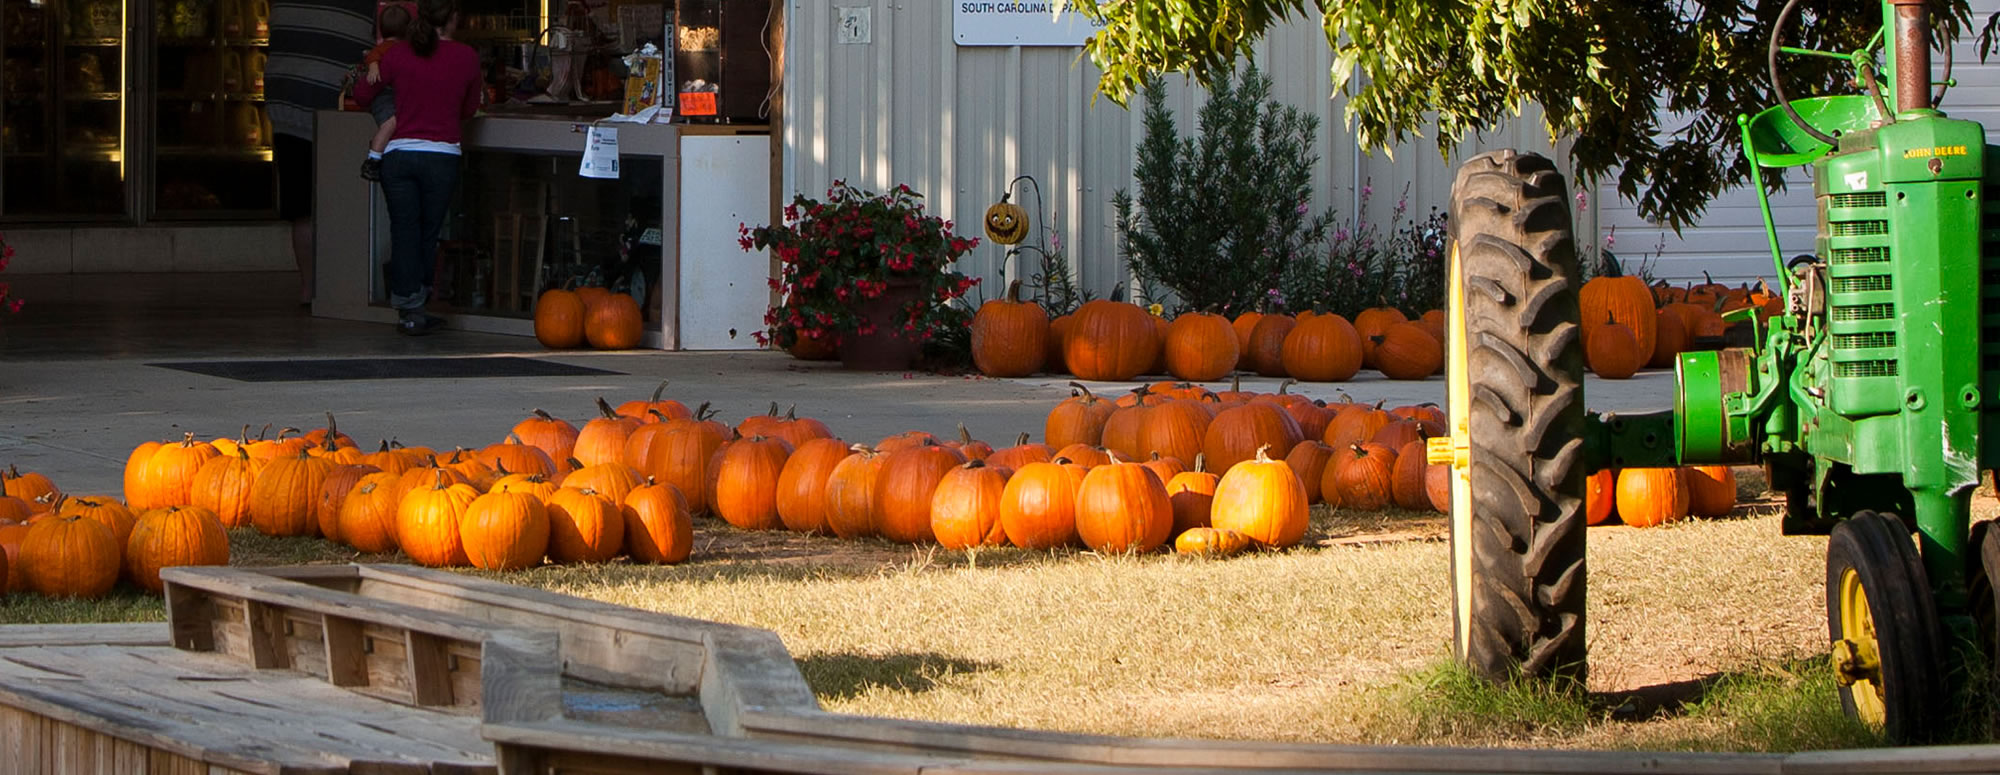 Fall In Love With Autumn in Spartanburg